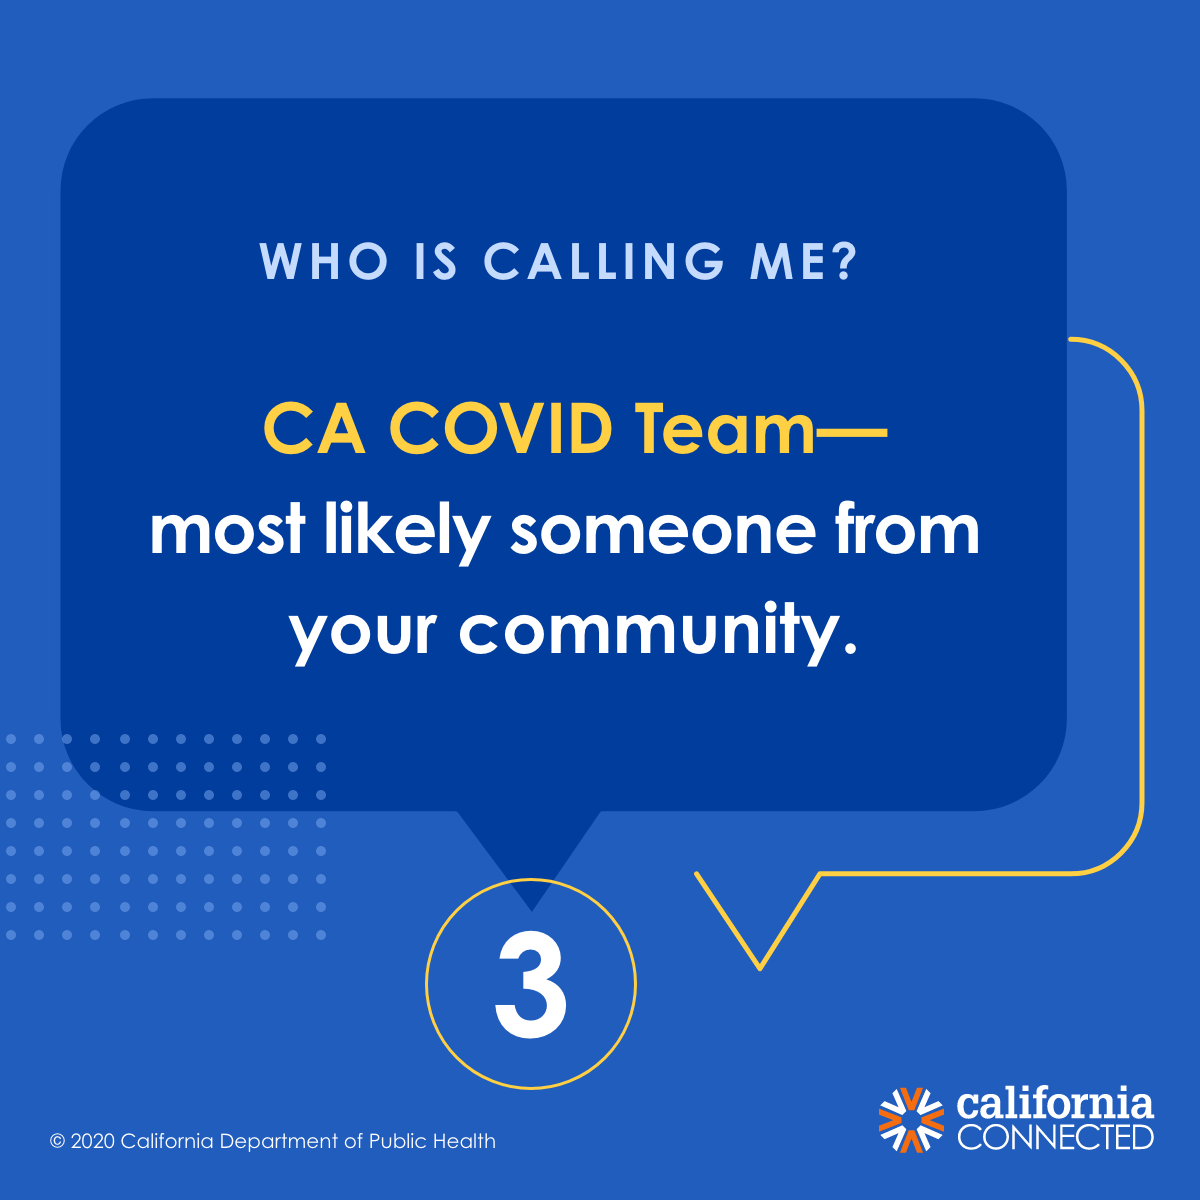 If you receive a call from the California contact tracing team, it is most likely someone from your community.